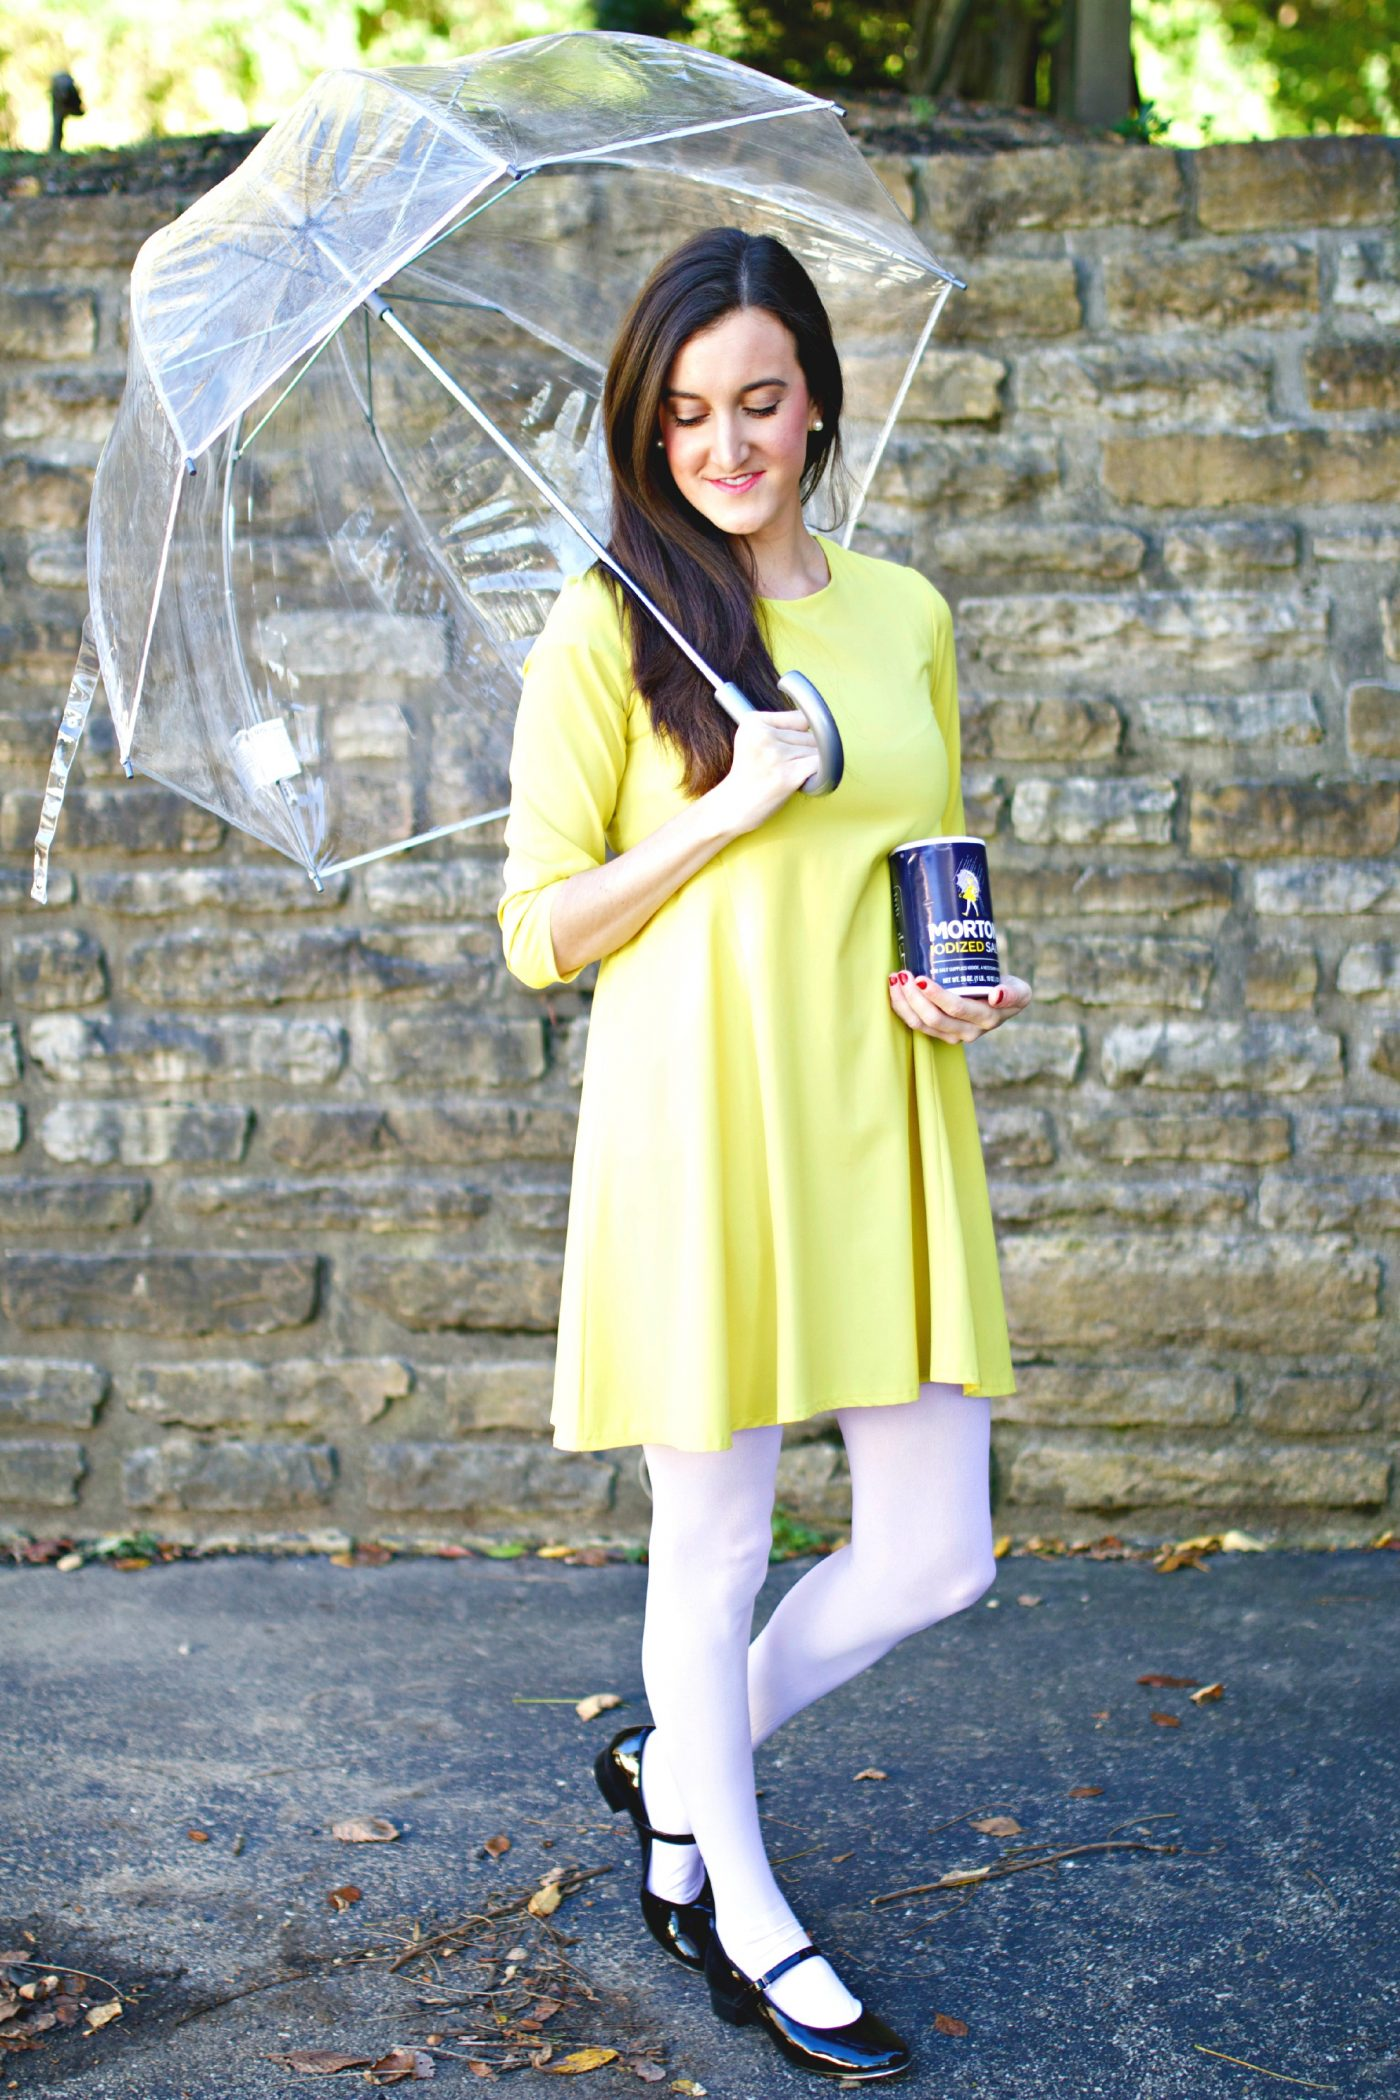 Morton Salt Girl Halloween Costume